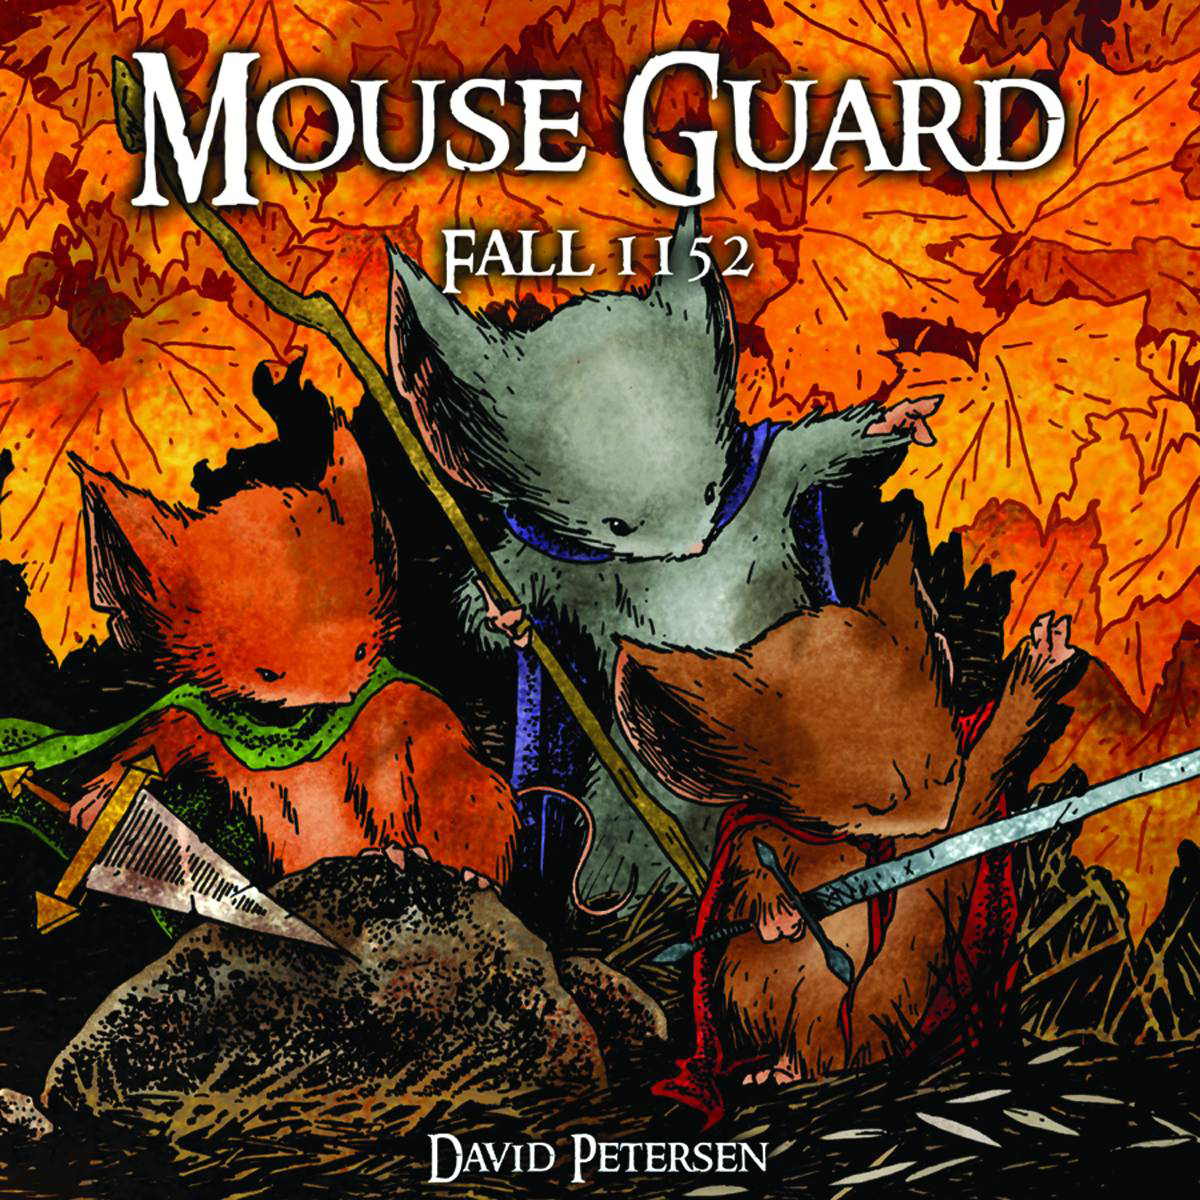 MOUSE GUARD HC VOL 01 FALL 1152 DUST JACKET ED